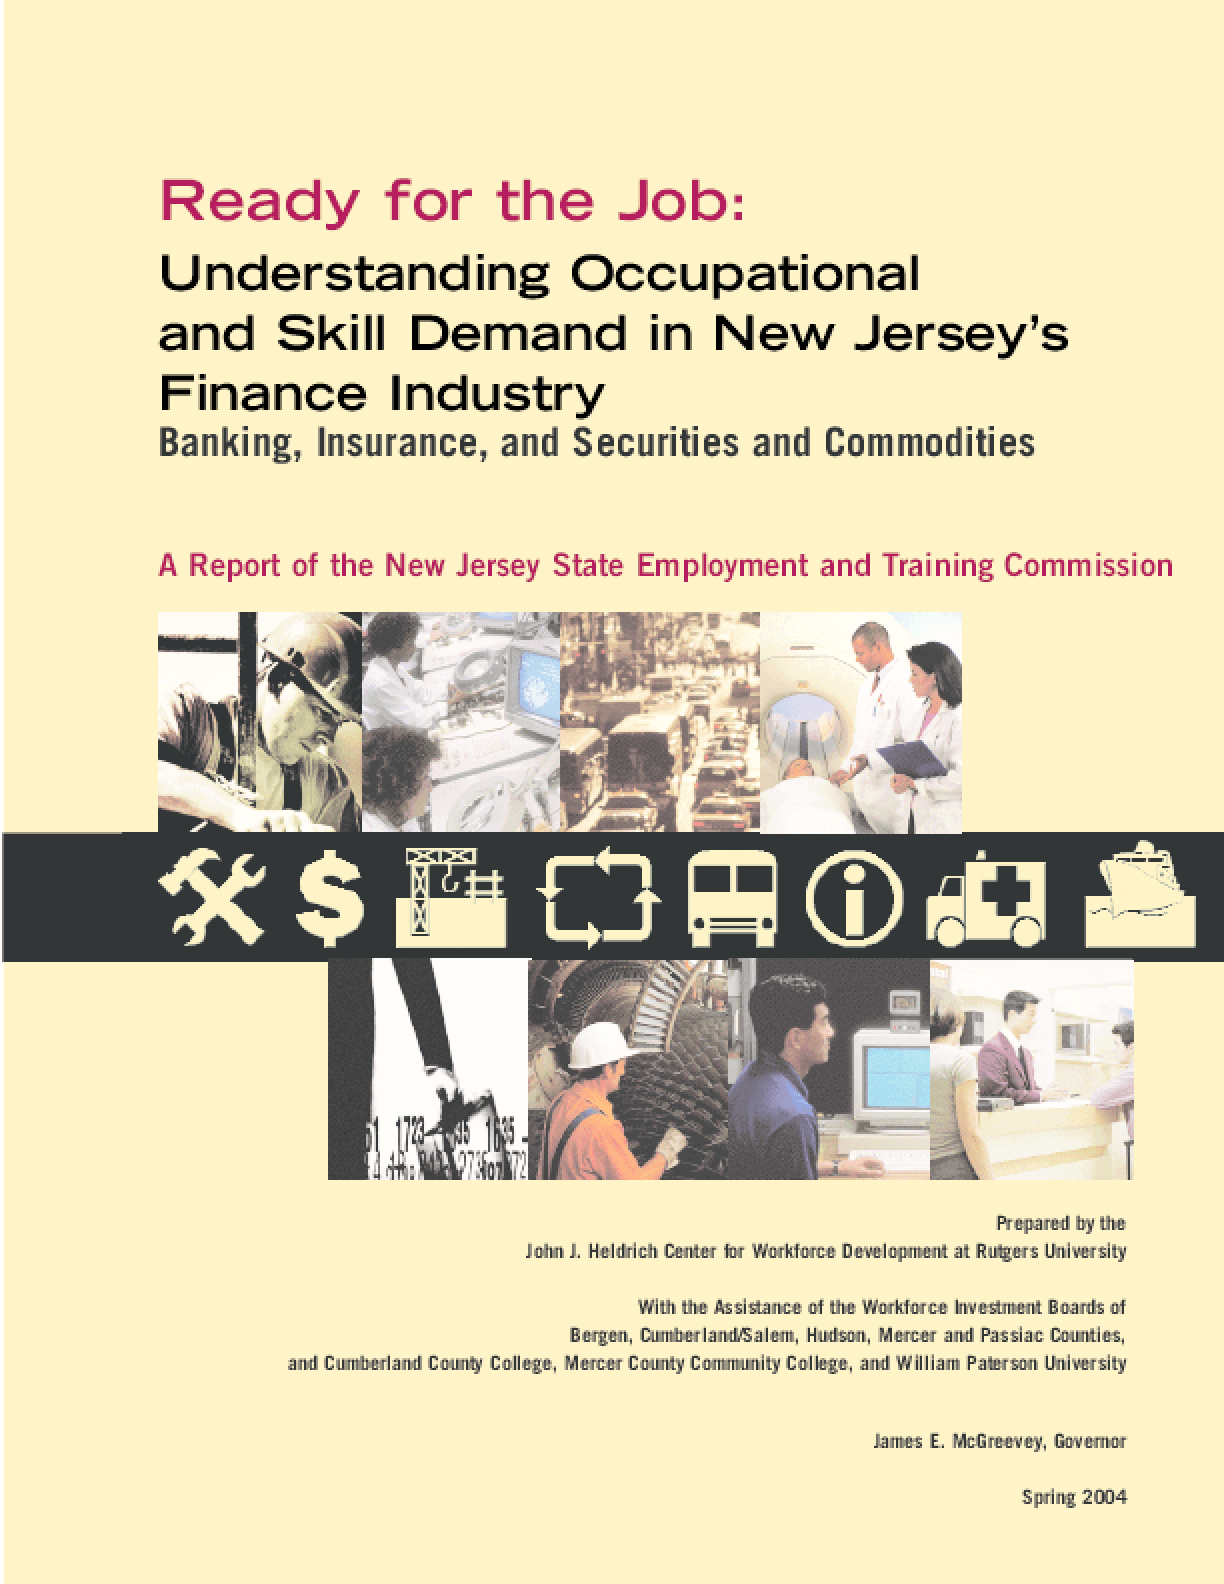 Understanding Occupational and Skill Demand in New Jersey's Finance Industry